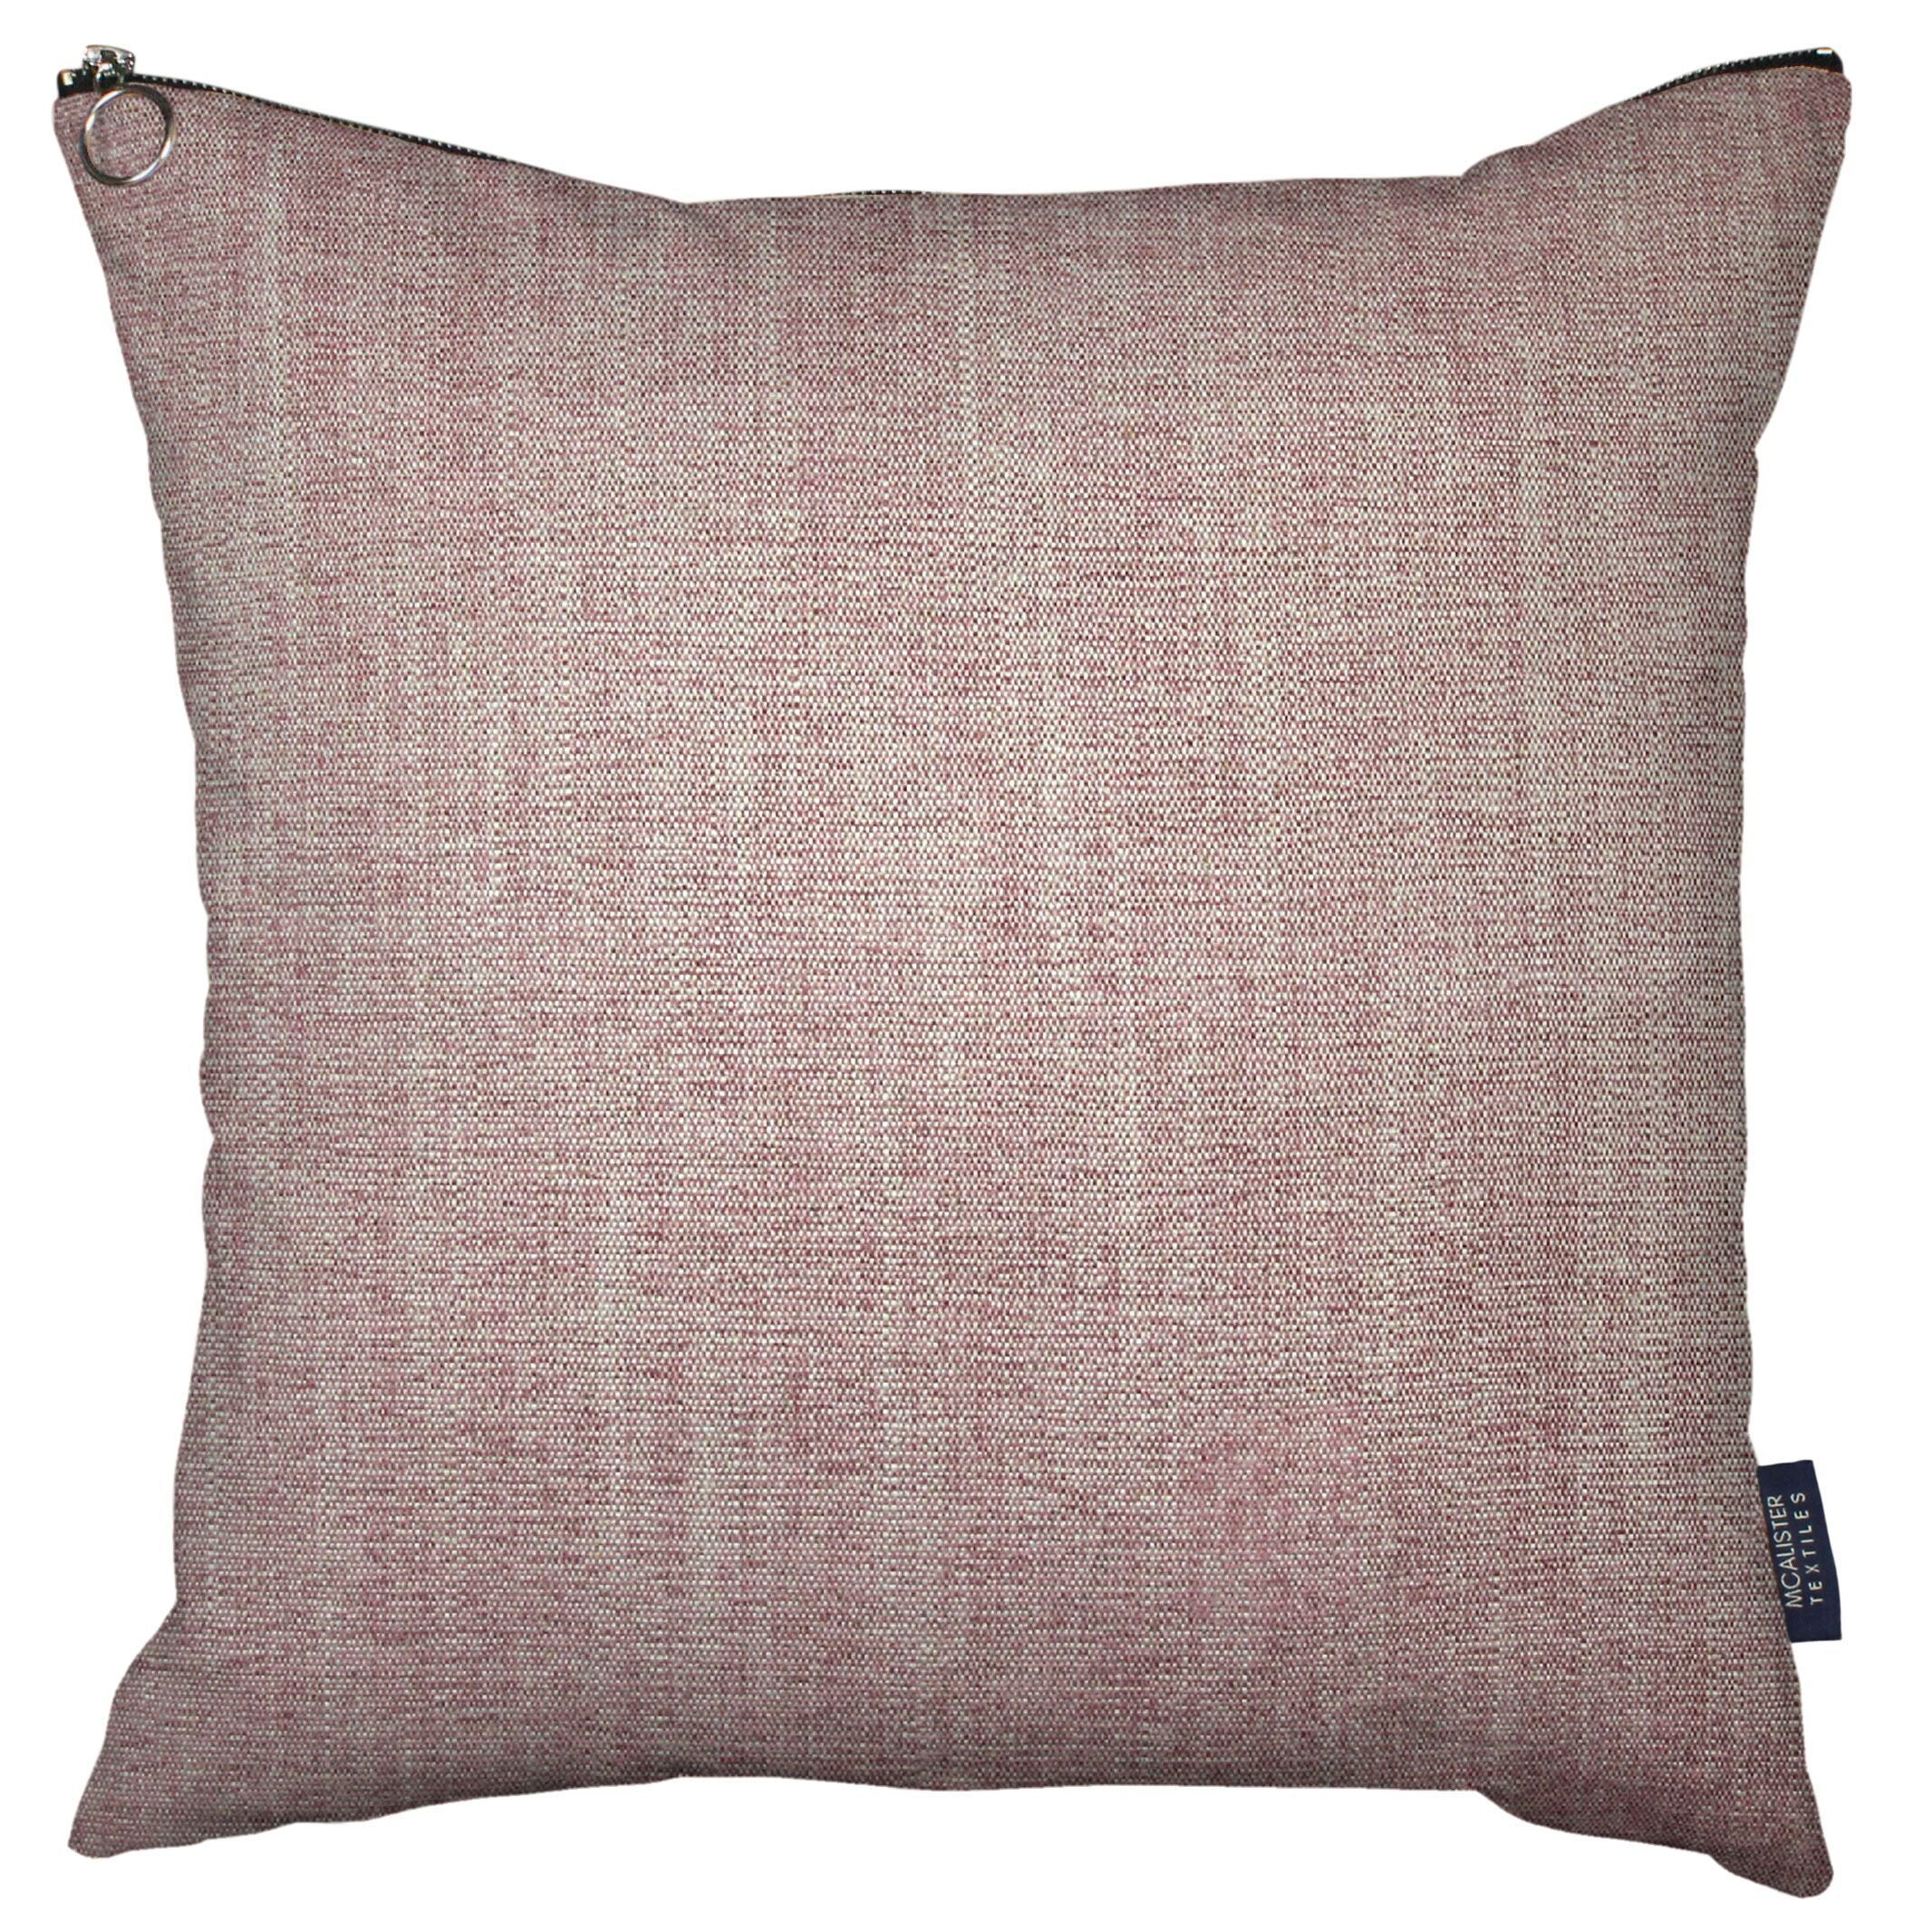 McAlister Textiles Rhumba Zipper Edge Blush Pink Linen Cushion Cushions and Covers Cover Only 43cm x 43cm